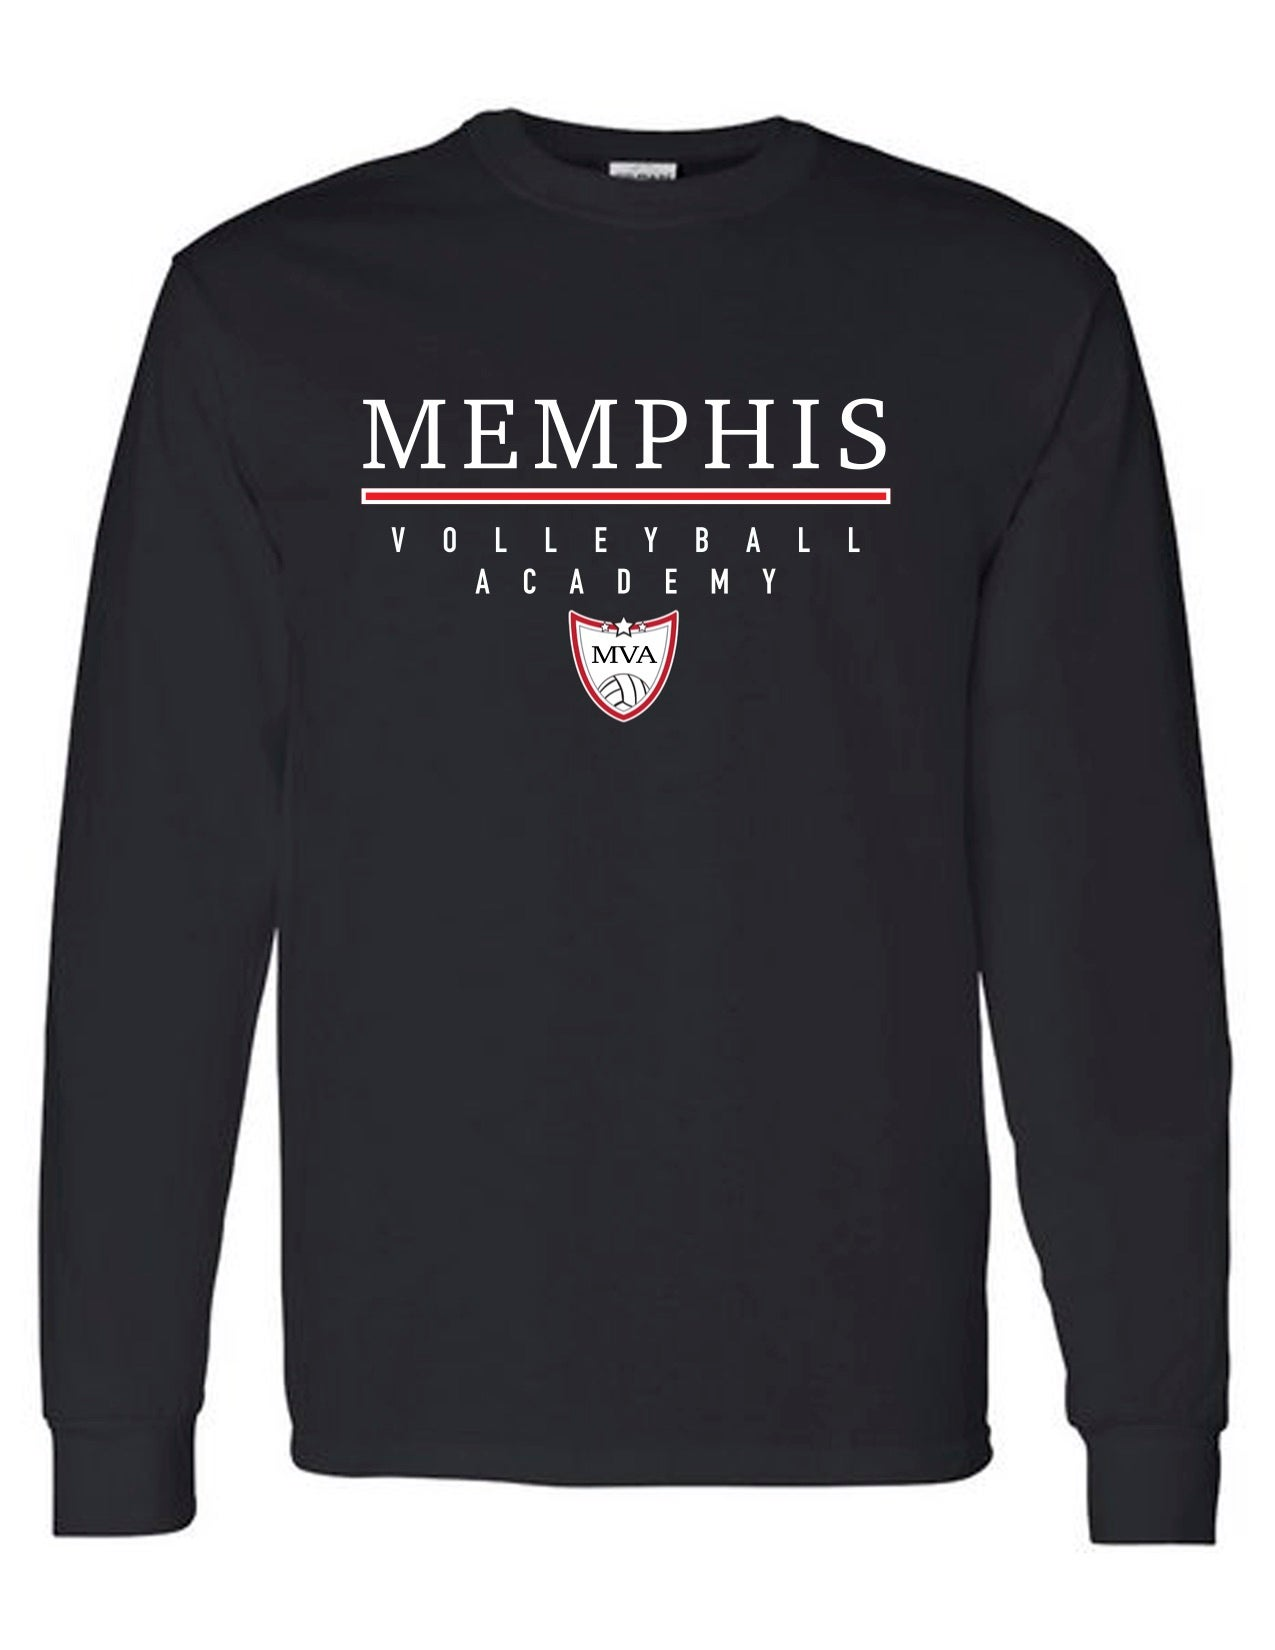 Image of Memphis Volleyball Academy Long Sleeve Tee - (Multiple Color Options)